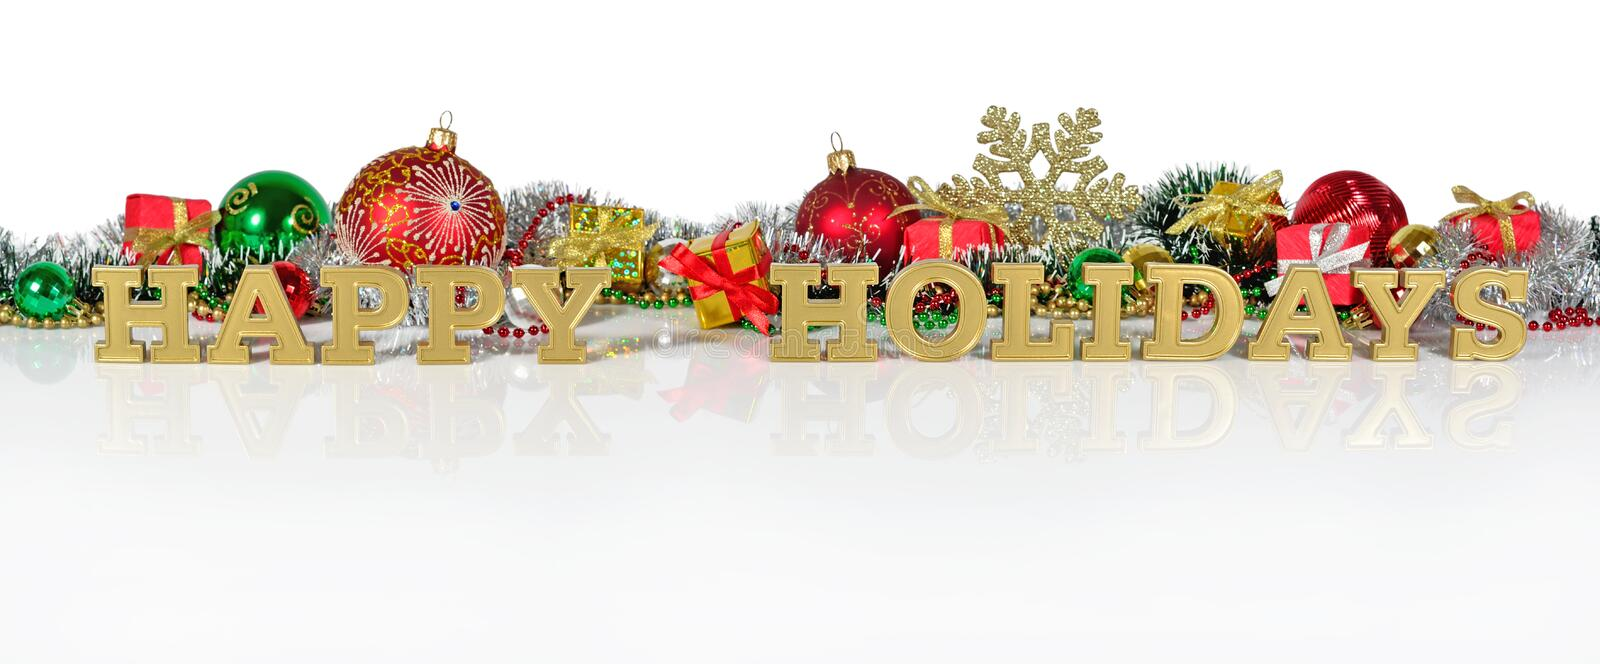 Happy holidays golden text and Christmas decorations stock image